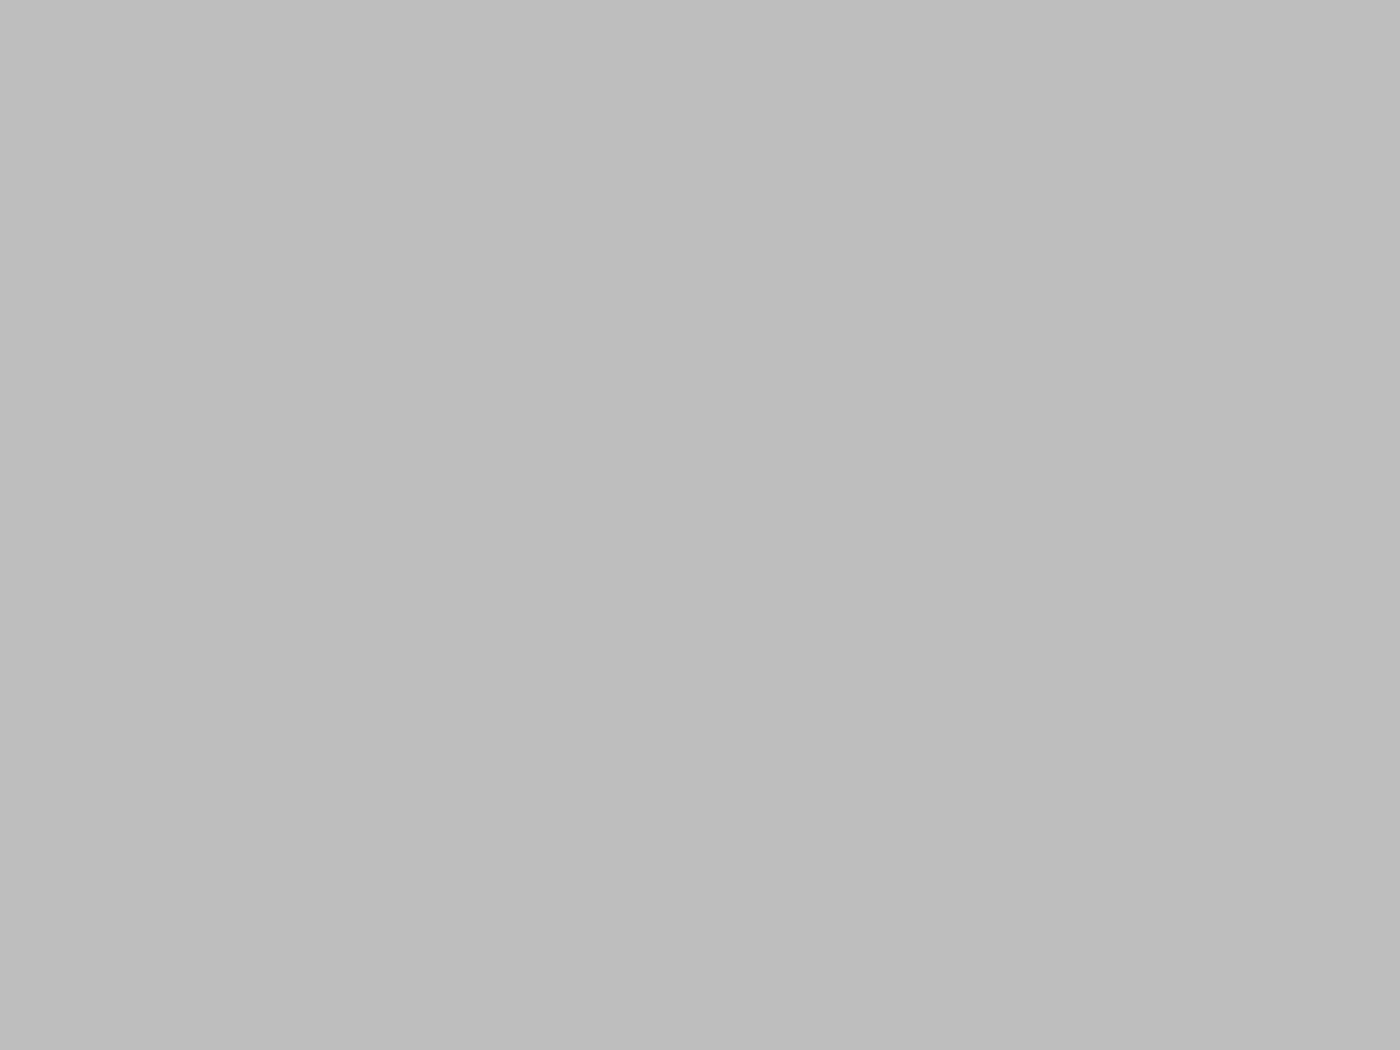 1400x1050 Gray X11 Gui Gray Solid Color Background